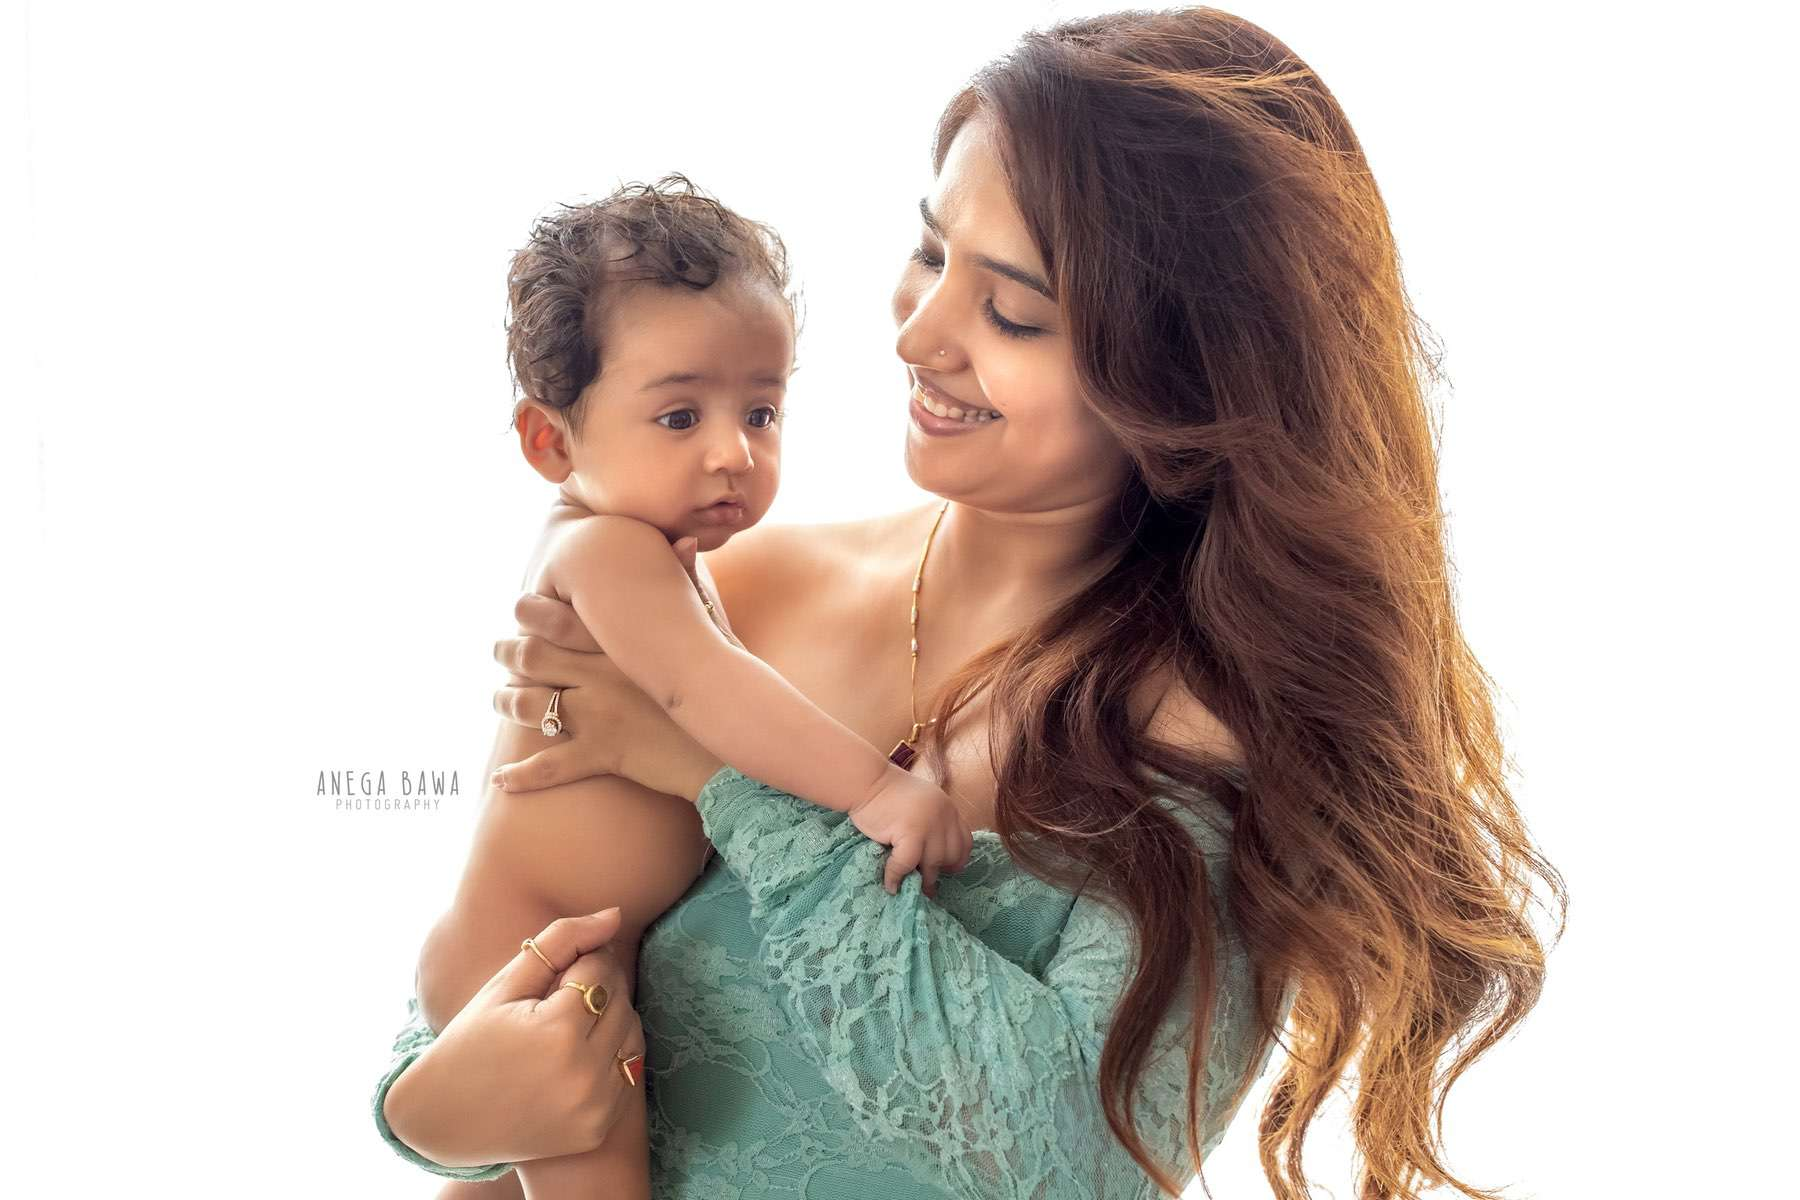 245606-white-background-green-mother-and-baby-photography-delhi-5-6-7-months-baby-photoshoot-gurgaon-anega-bawa